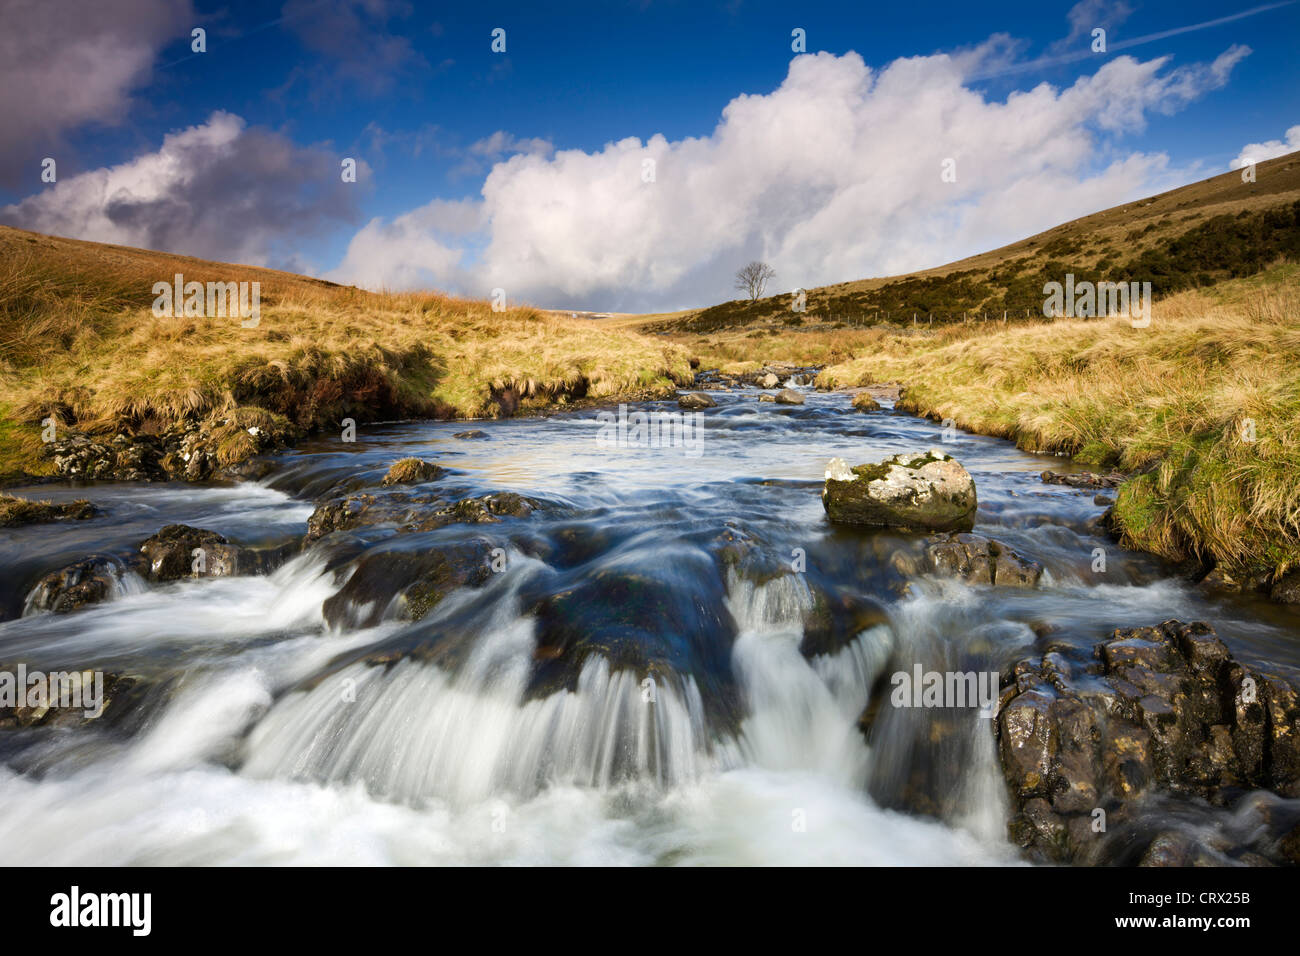 Rocky River Tawe in the moorland of Fforest Fawr, Brecon Beacons National Park, Wales, UK. Winter (January) 2010. - Stock Image